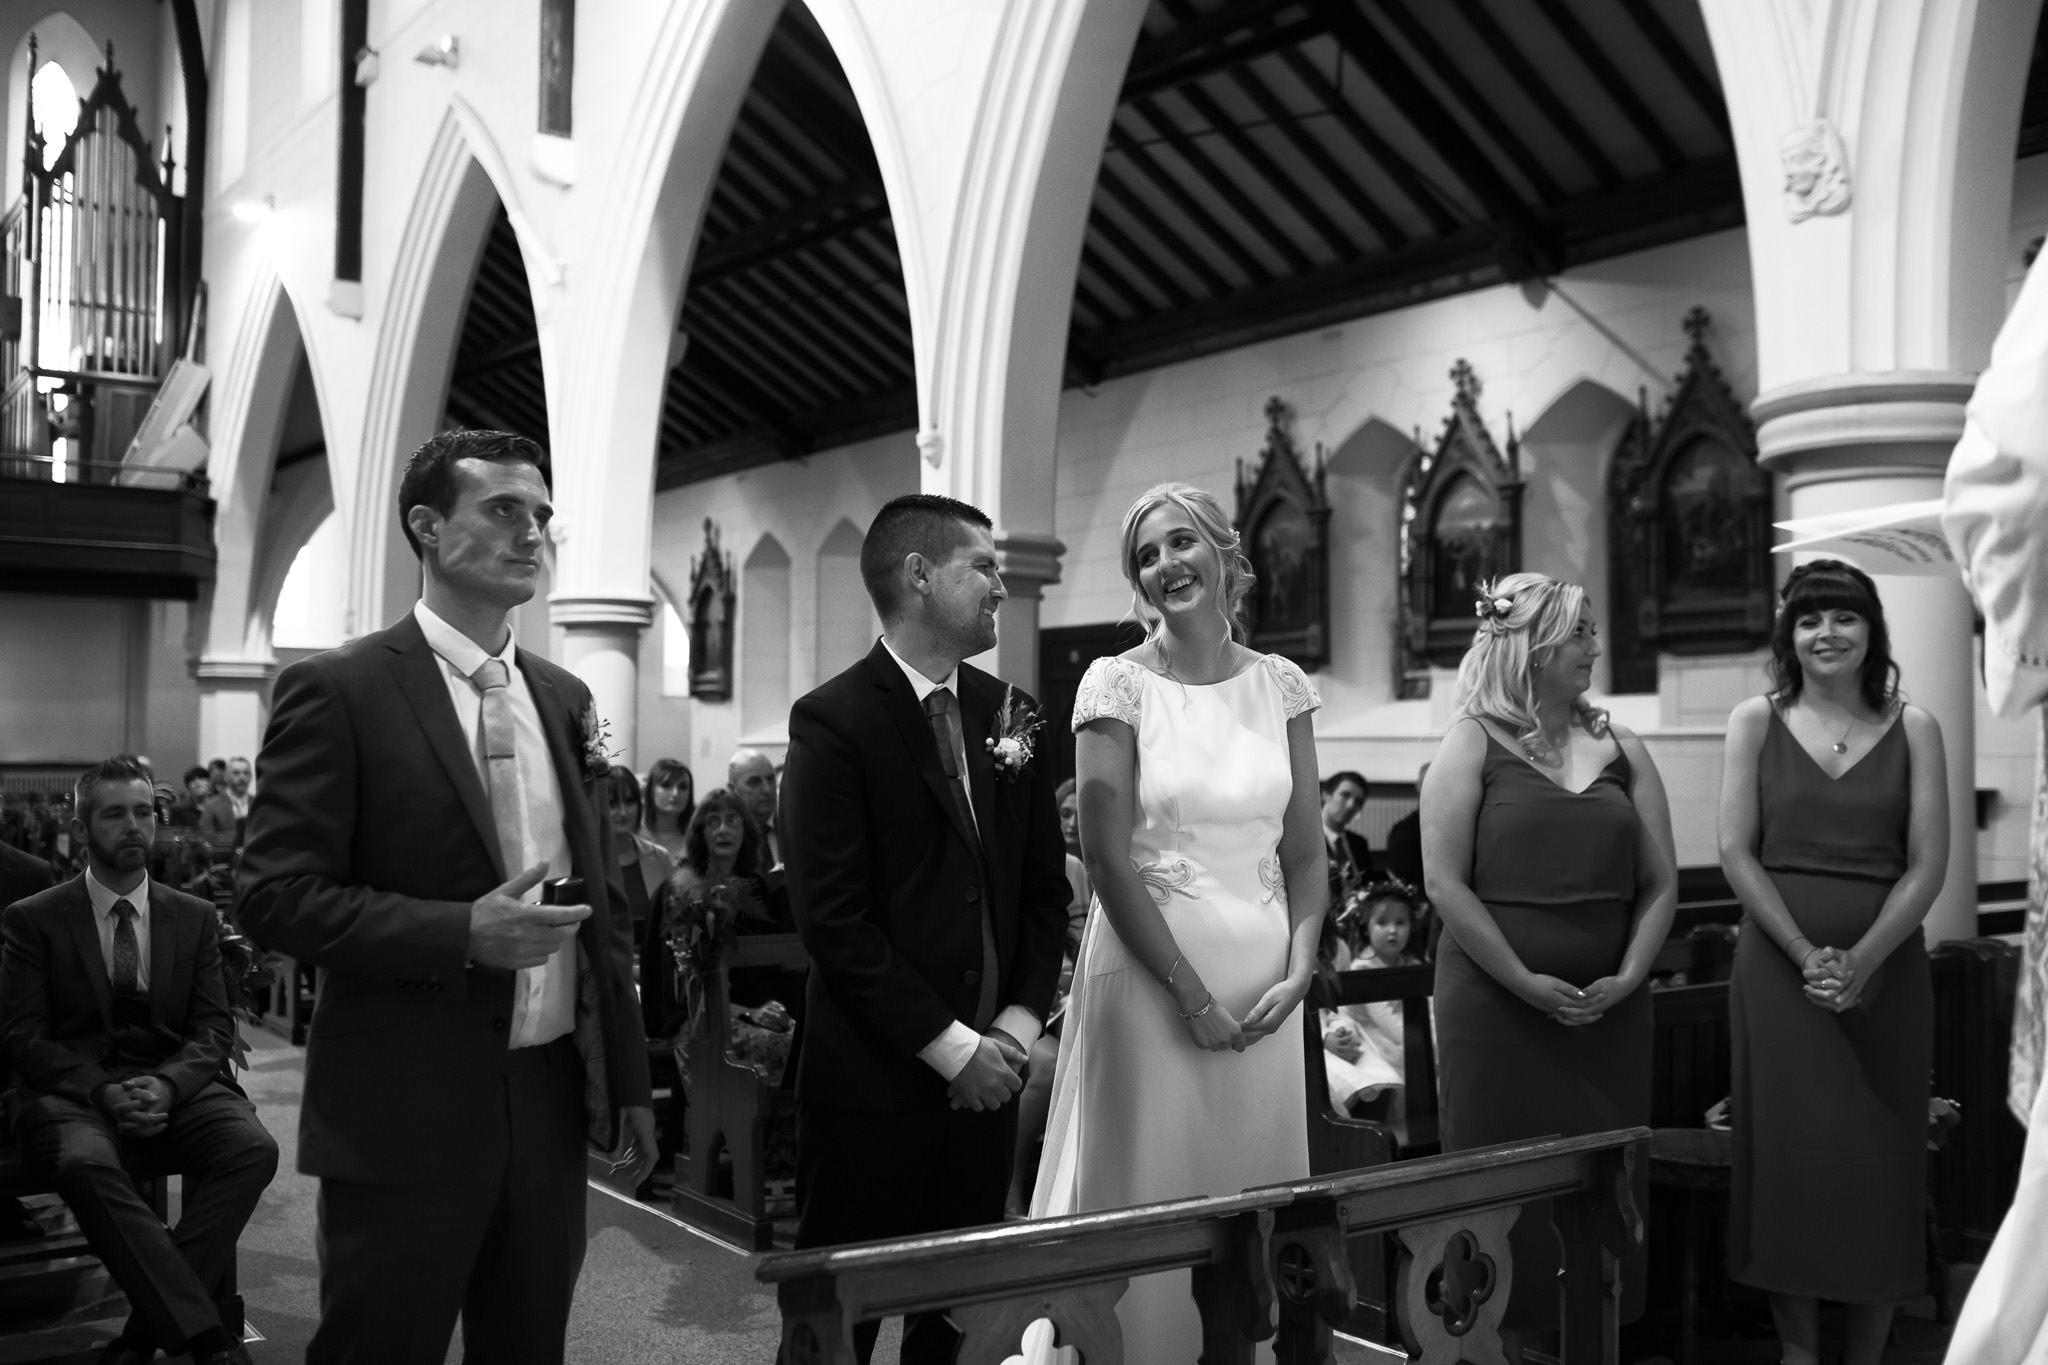 Mark_Barnes_Northern_Ireland_Wedding_Photography_Ballyscullion_Park_Wedding_Photography_Stef&Bobby-19.jpg